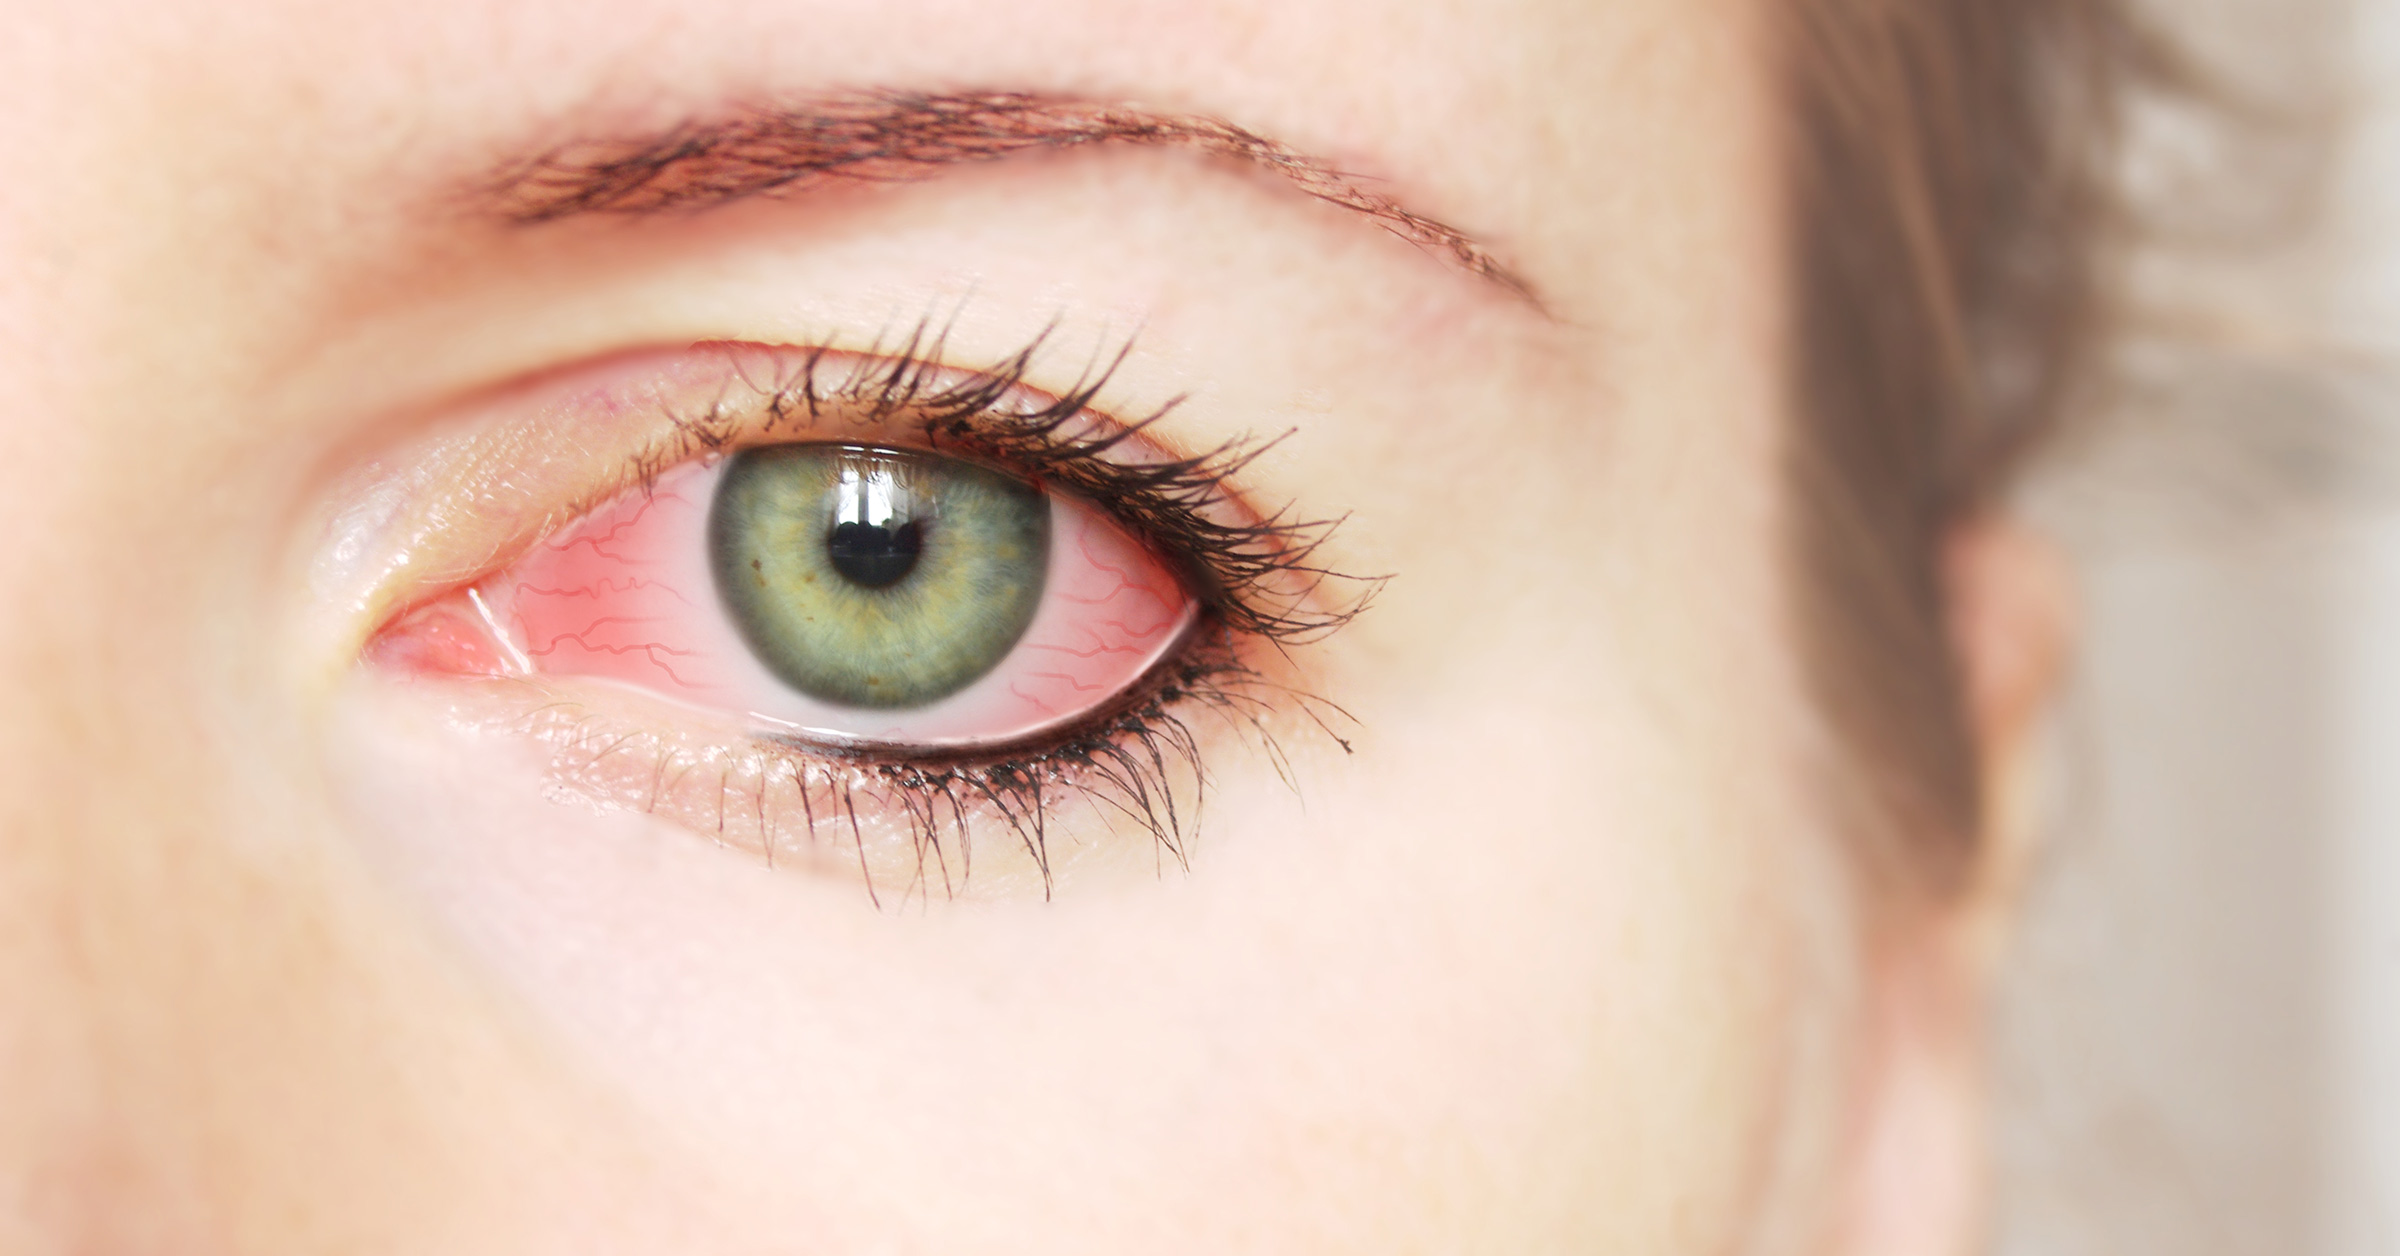 How to treat conjunctivitis without risk to health 20